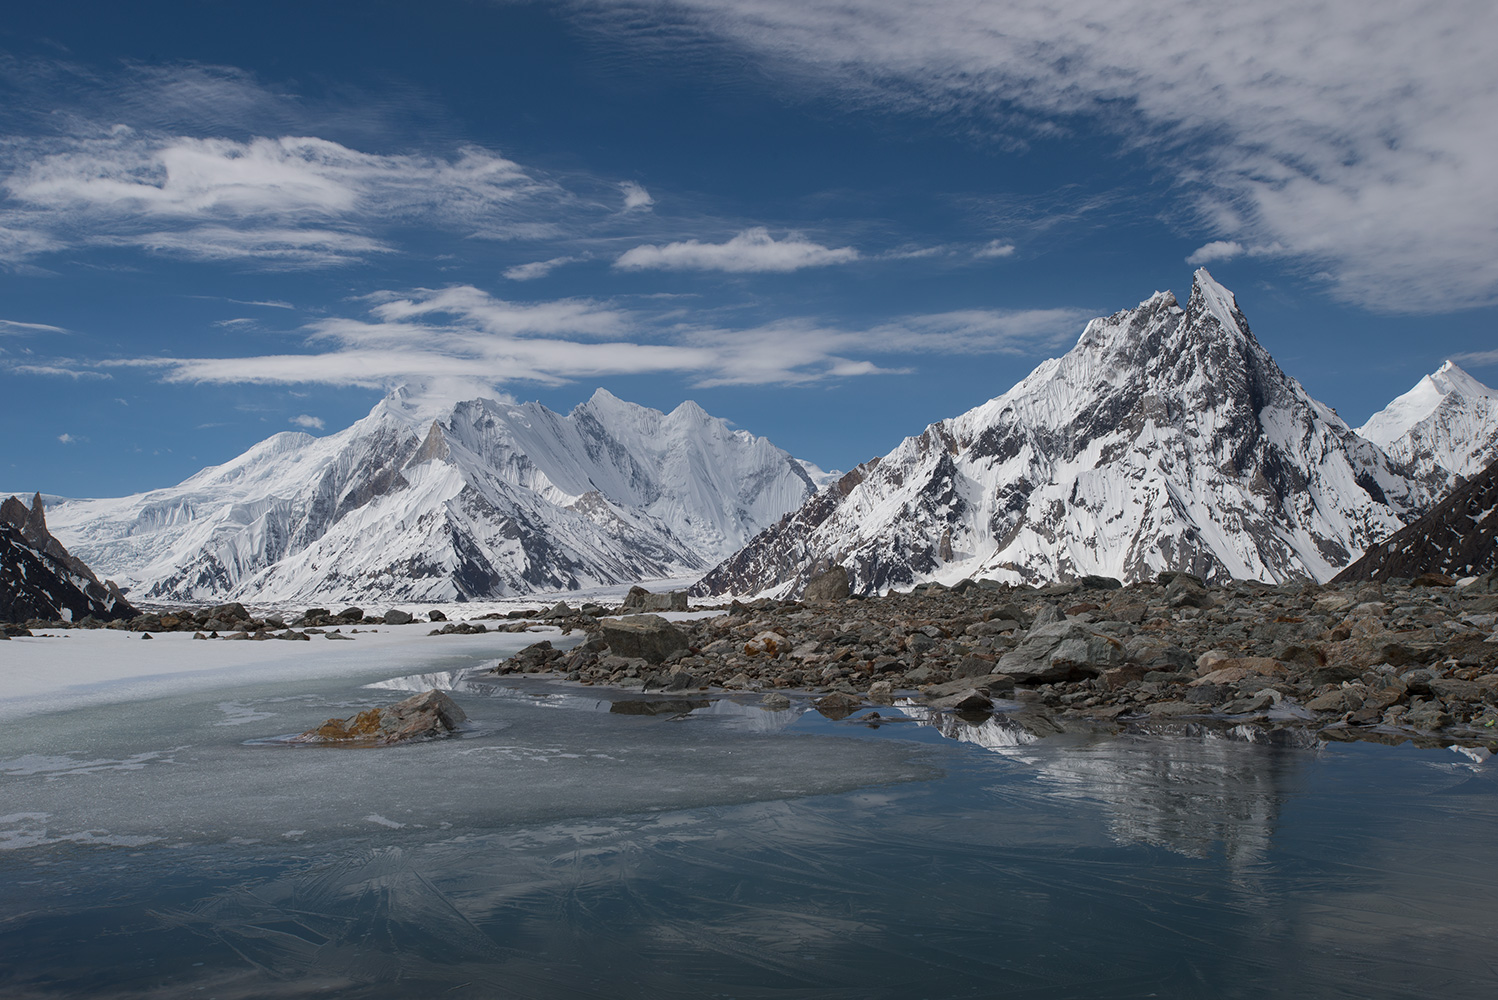 Chogolisa (summit in cloud), the confluence of the Vigne and Baltoro glaciers and Mtre Peak, from the way to Braod Peak base camp